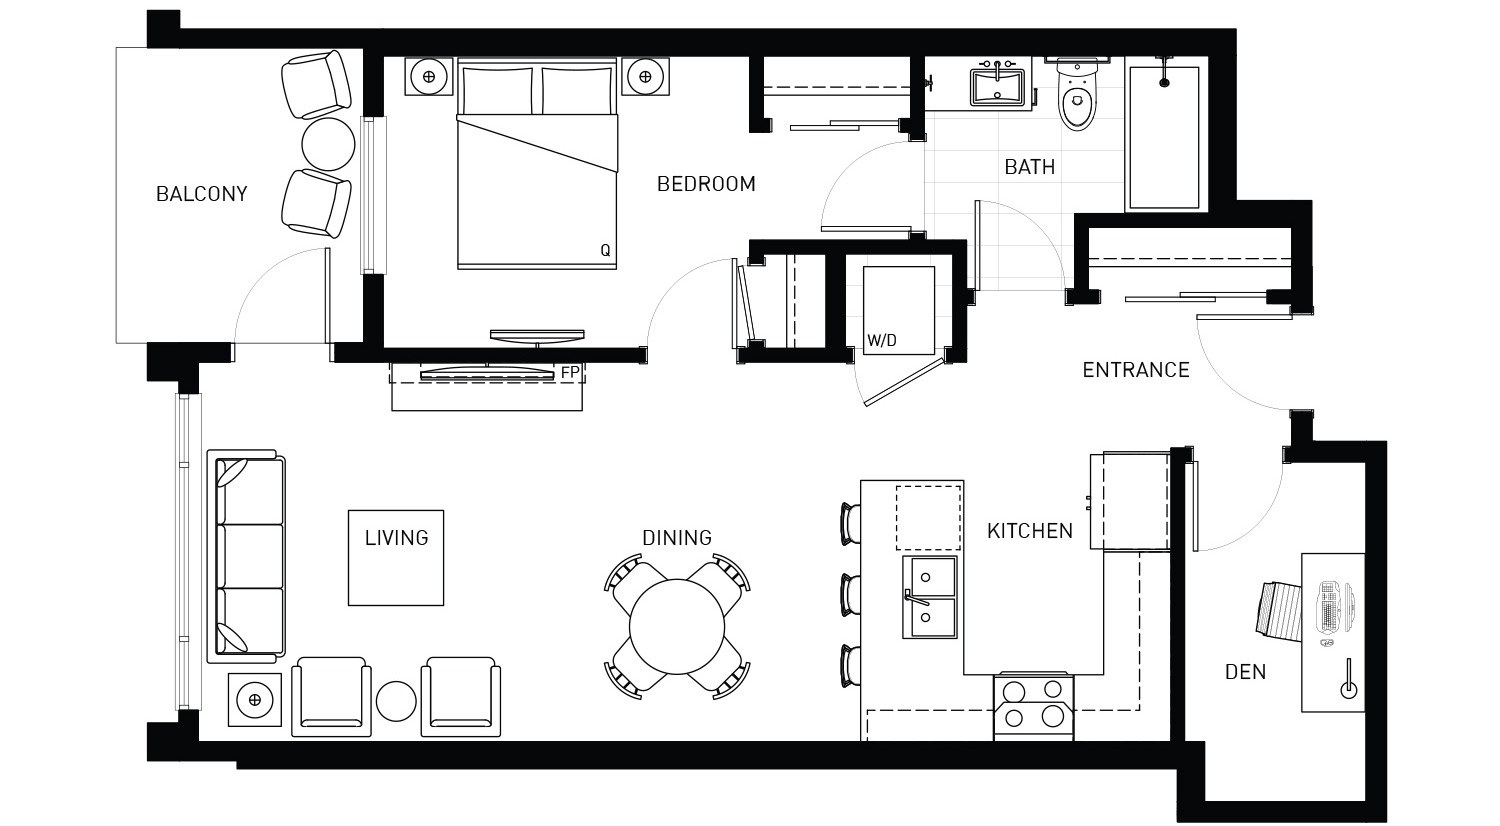 Plan D1 Floorplan